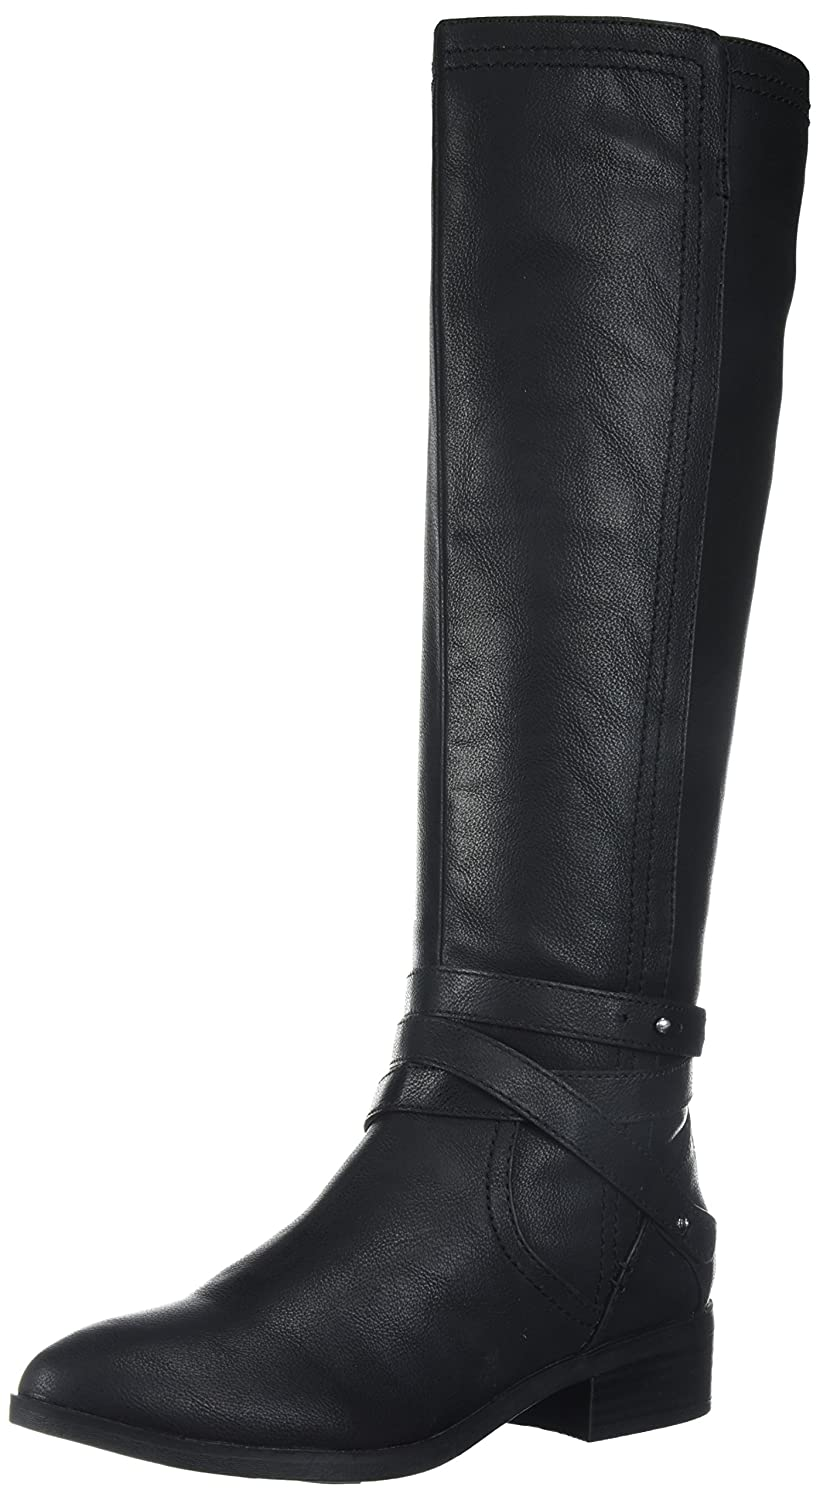 Black Fergalicious Womens Lennin Riding Boot